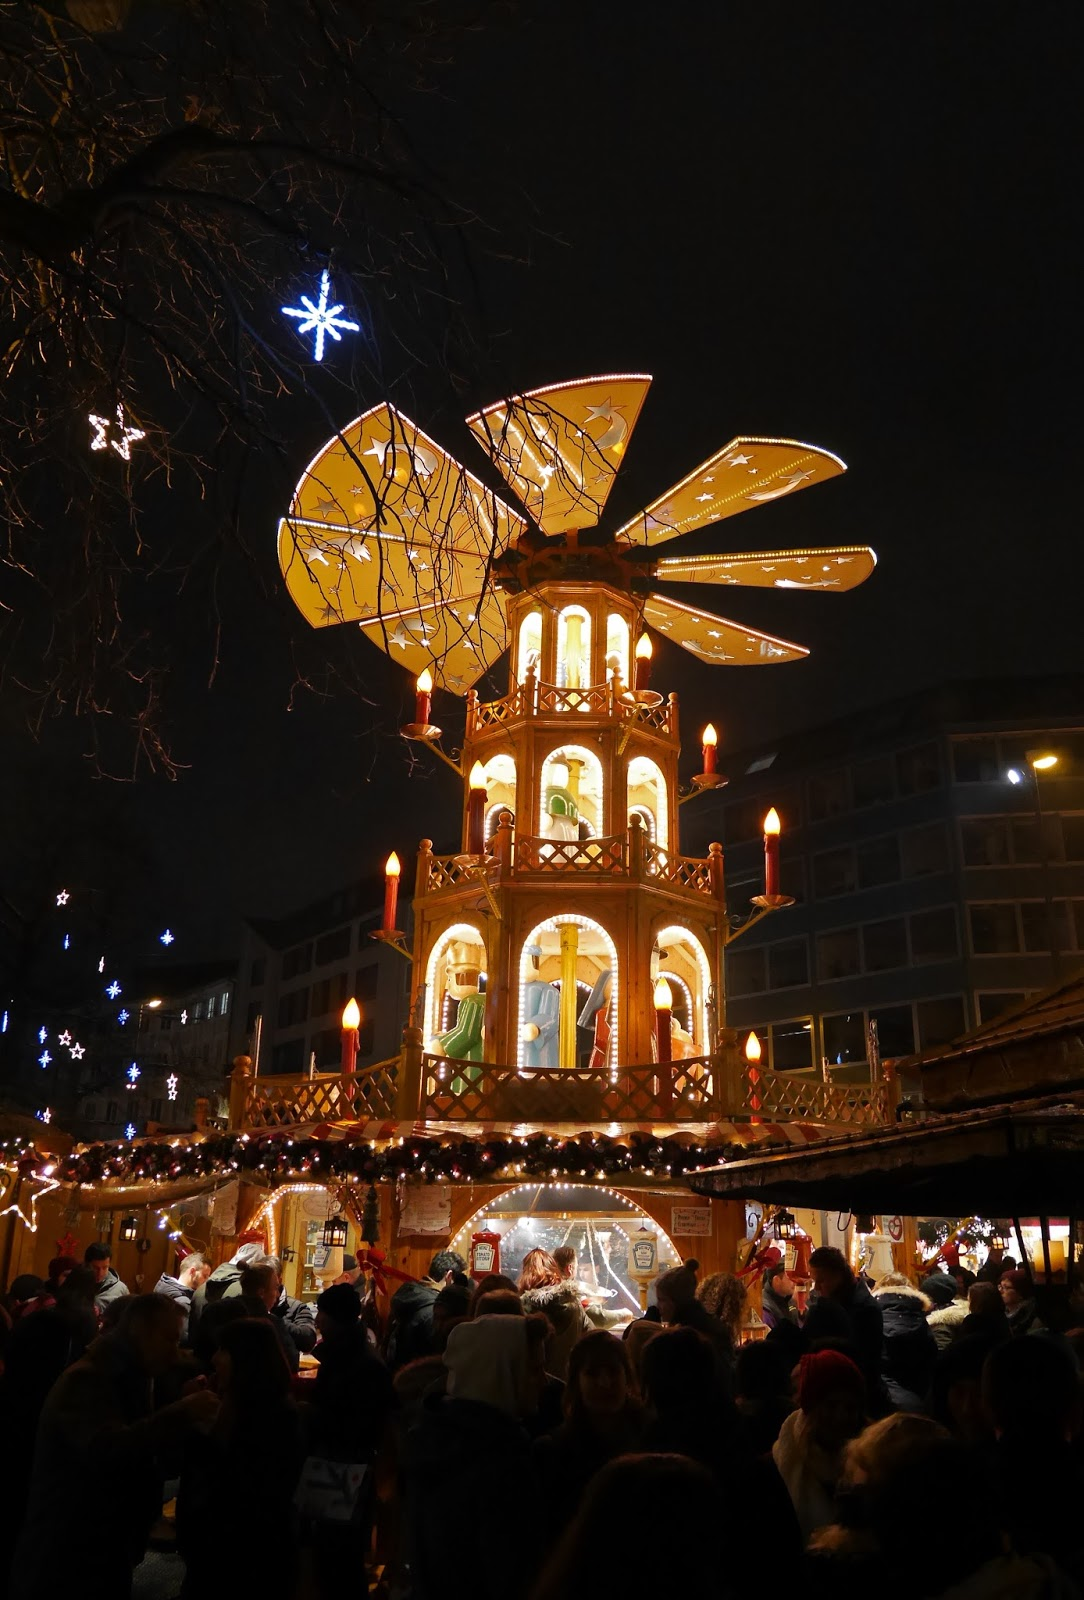 Munich Christmas Markets at night